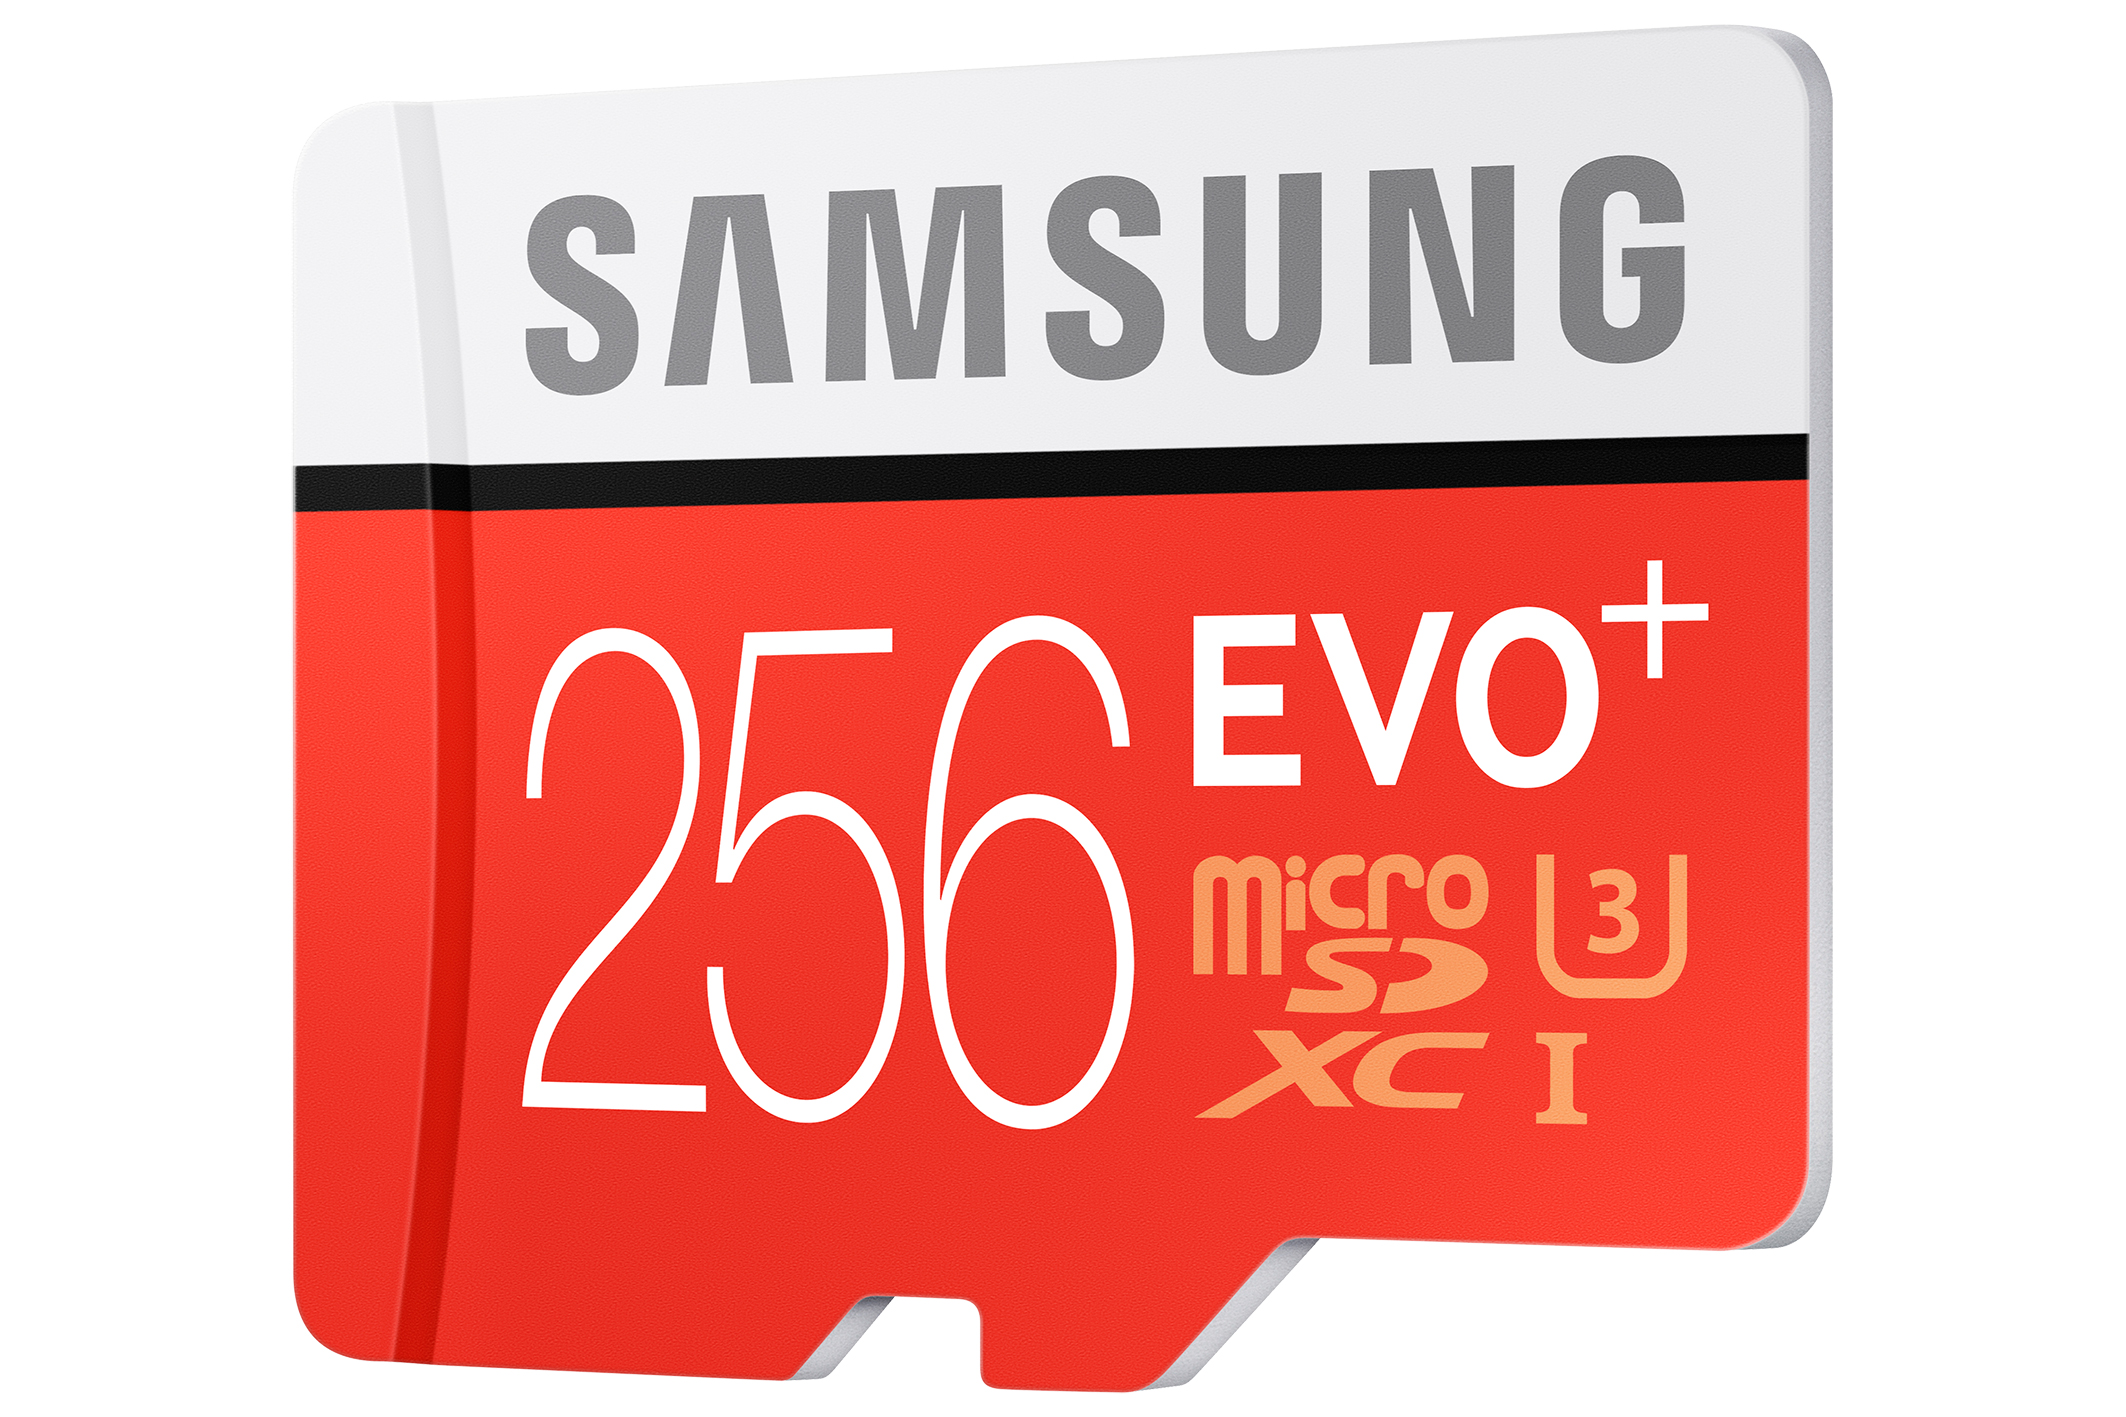 samsung stellt erste 256 gb microsd karte vor. Black Bedroom Furniture Sets. Home Design Ideas